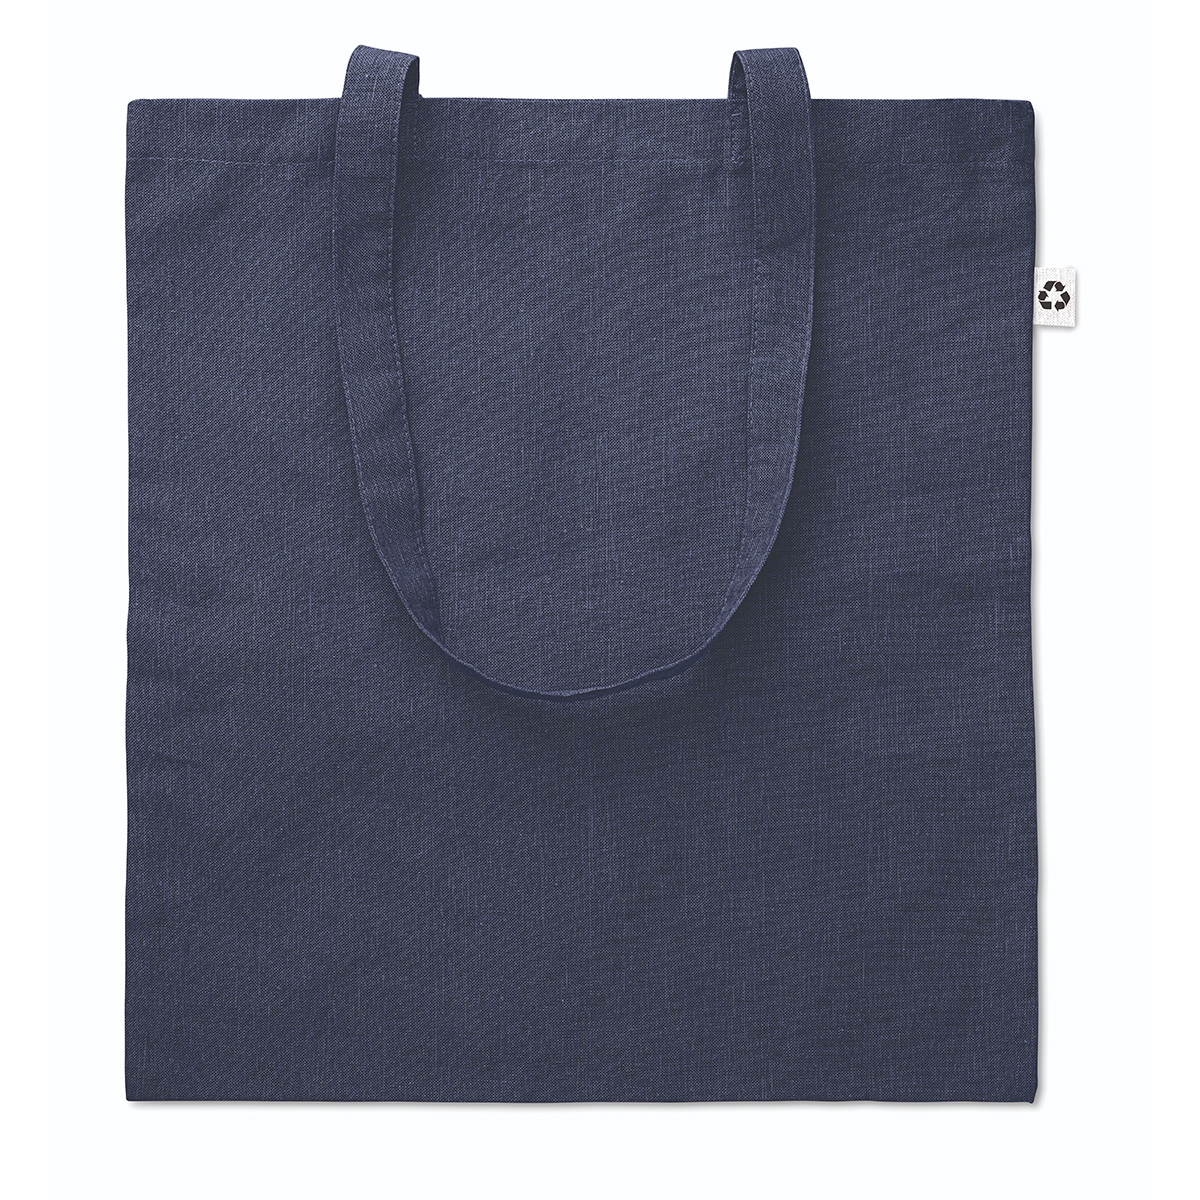 Recycled Cotton Tote Bag Navy Blue